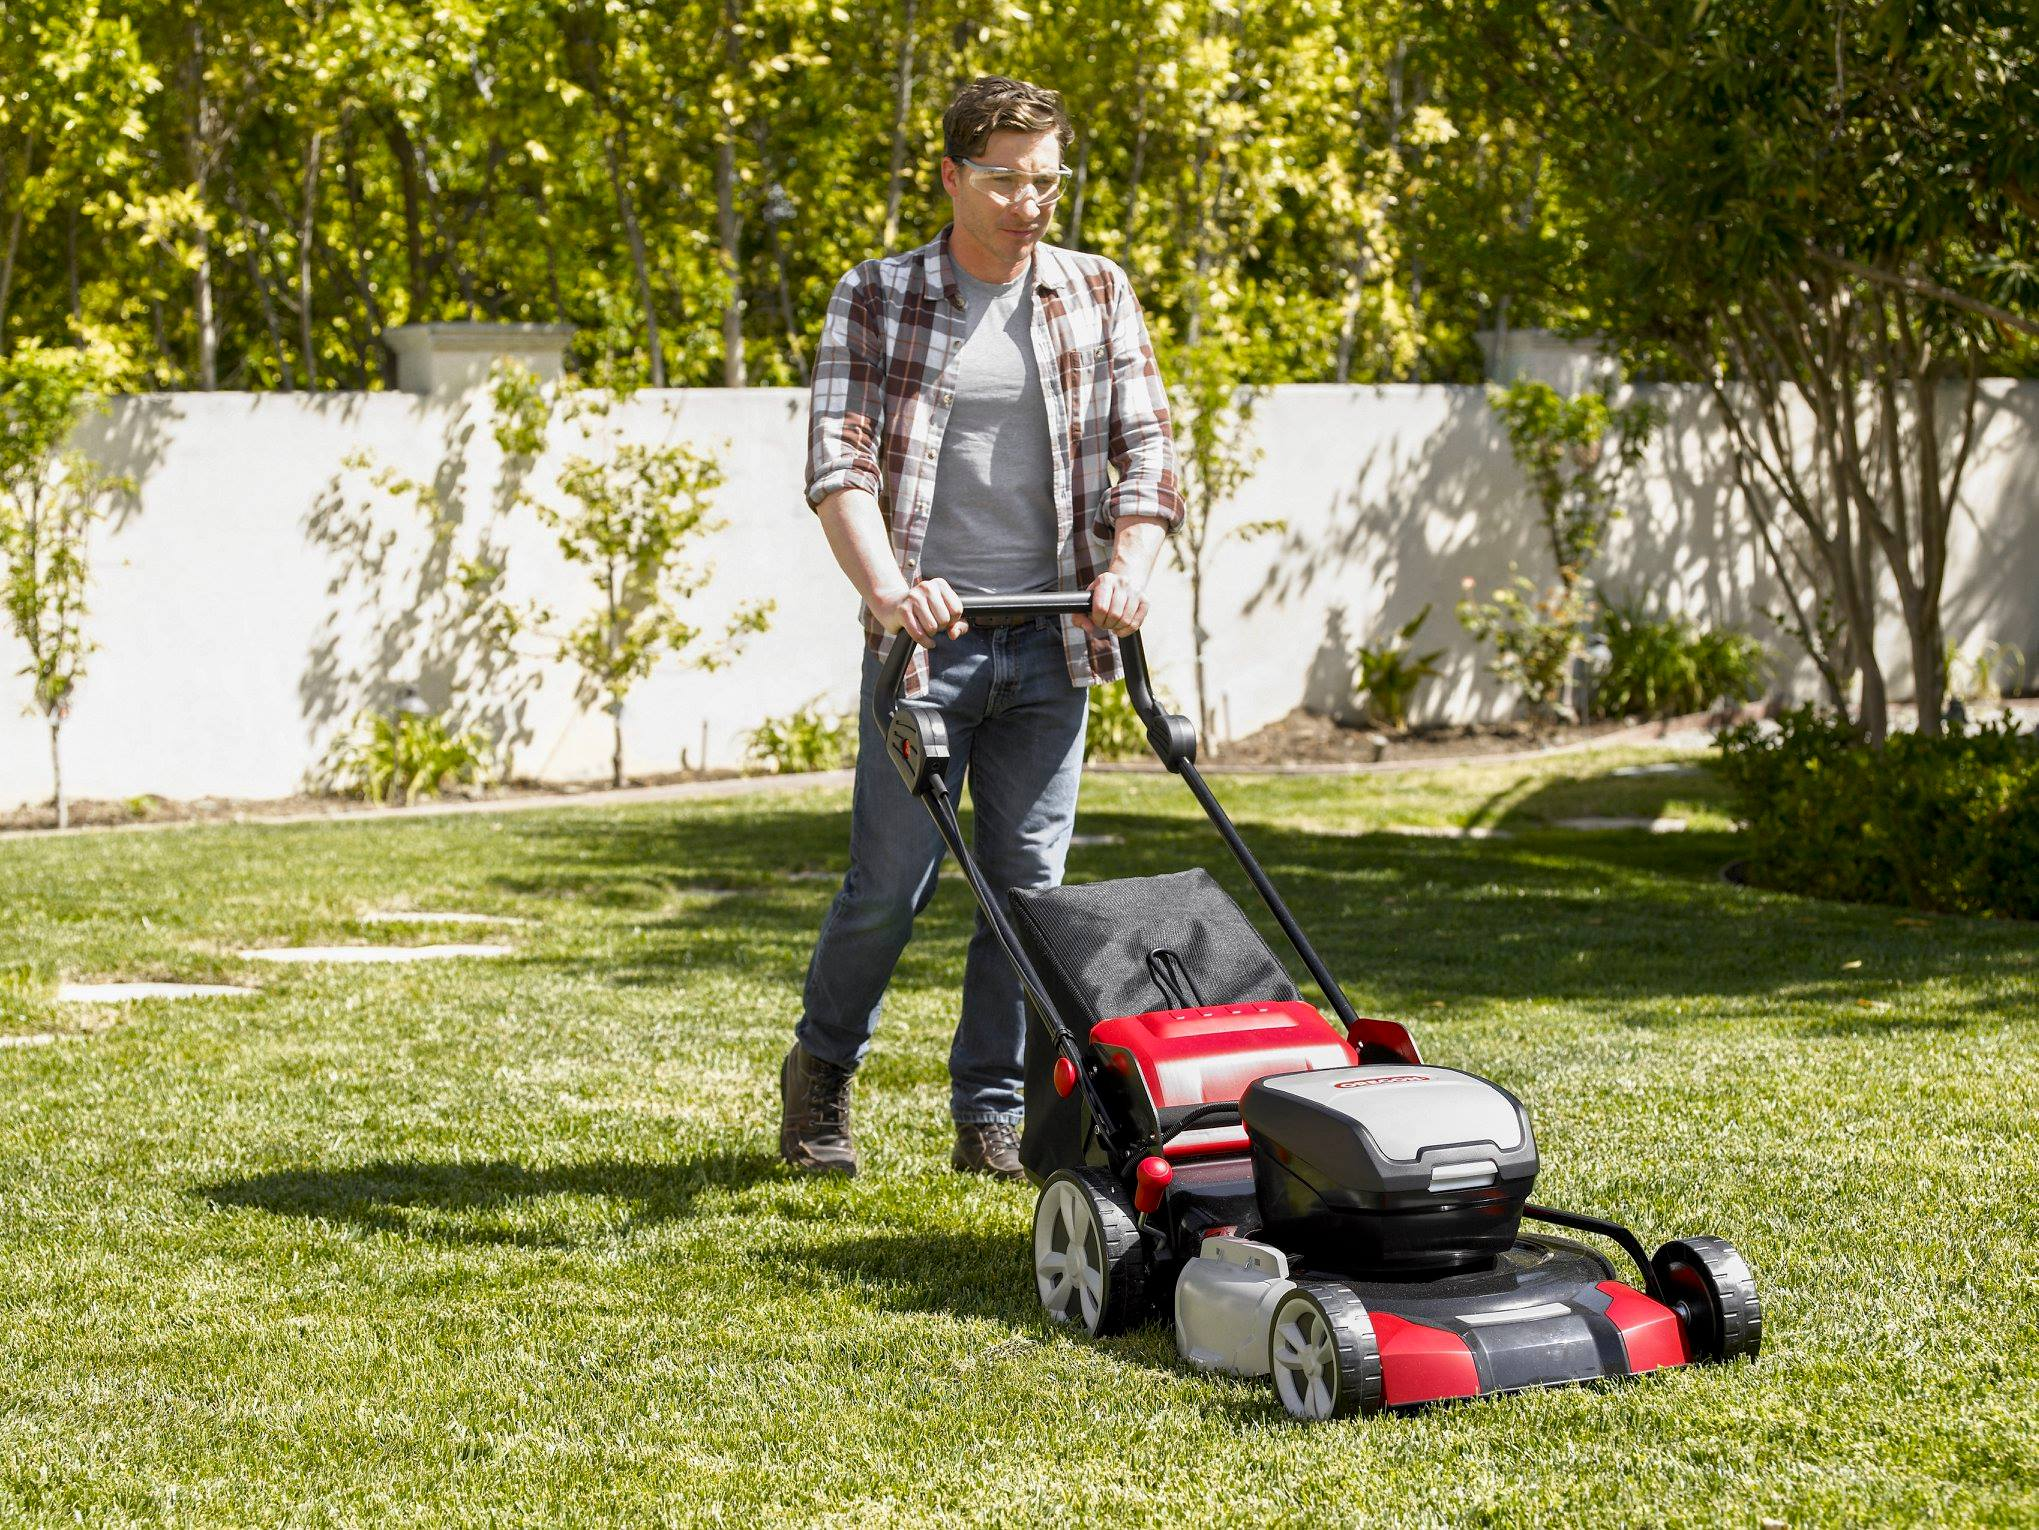 Man using a TORO walk behind mower to mow his lawn